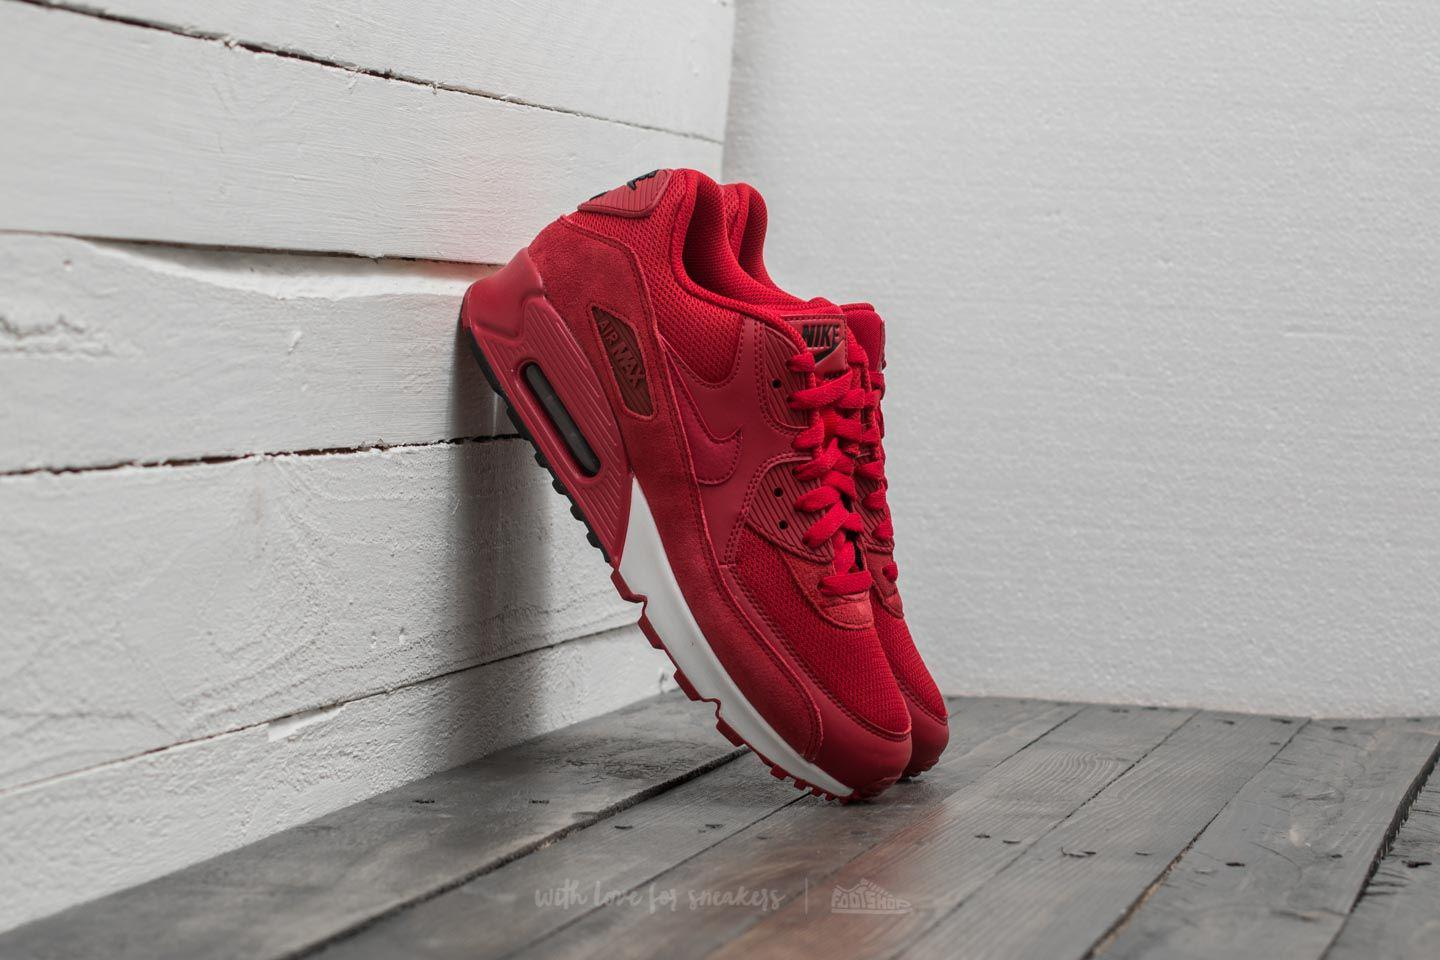 9cc3d2b3c5 Nike Air Max 90 Essential Gym Red/ Gym Red-black-white in Red for ...